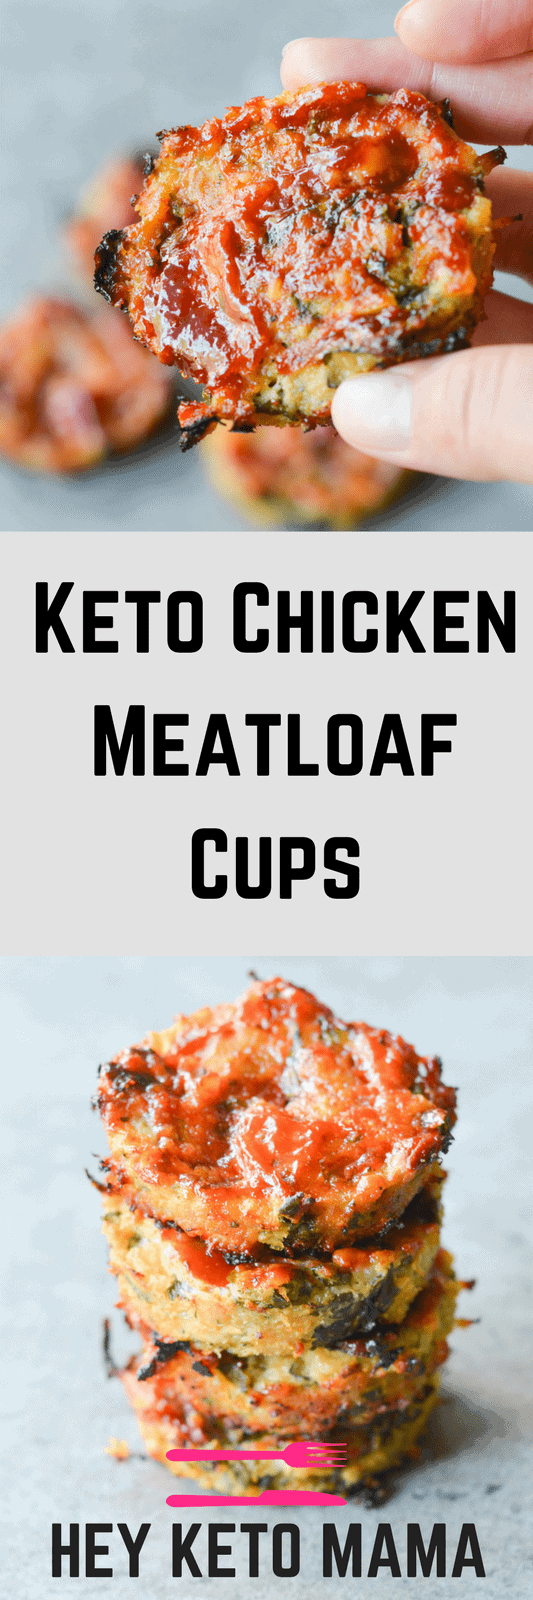 These Keto Chicken Meatloaf Cups are one of the easiest Low Carb Dinners I've ever made! Want to add some extra flavor? Wrap them in bacon!   heyketomama.com